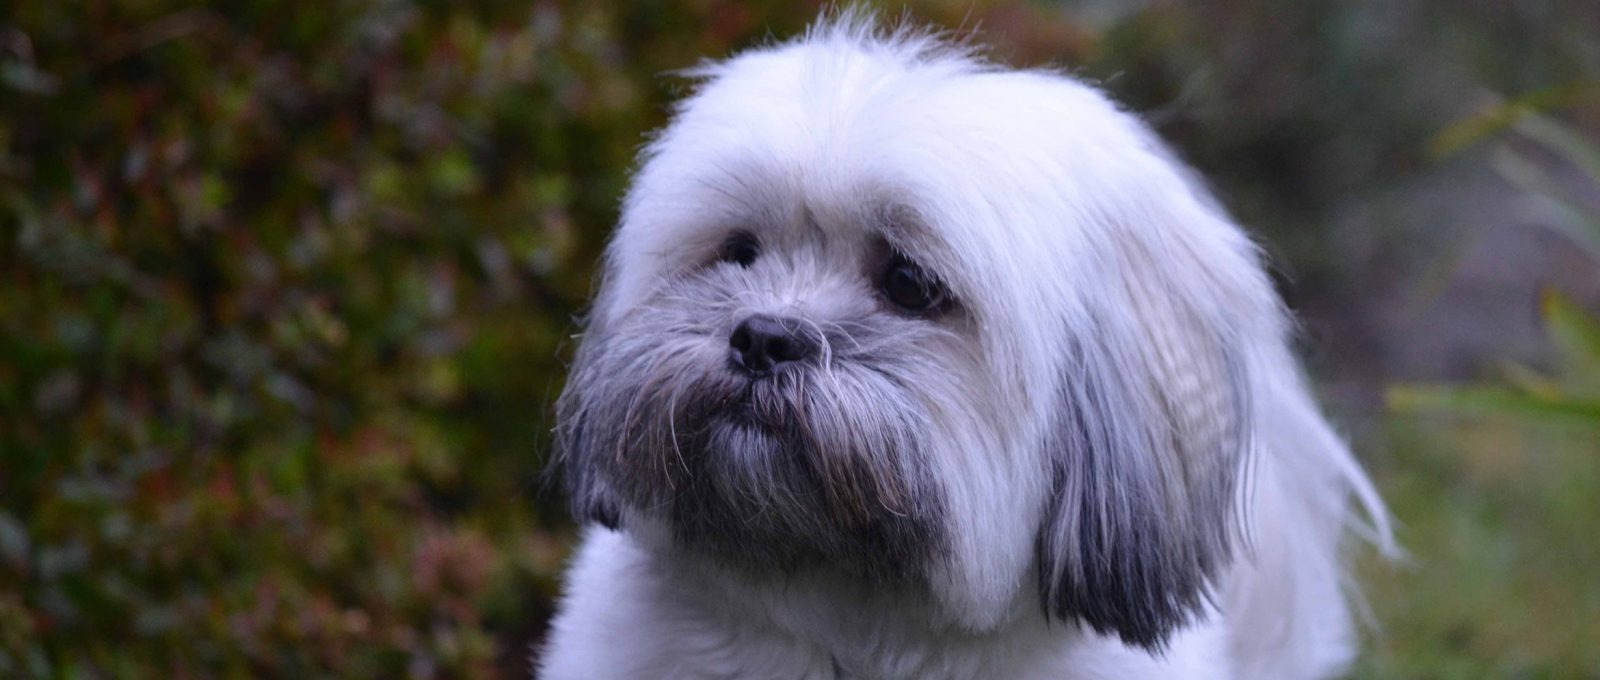 Lhasa Apso close up in the garden